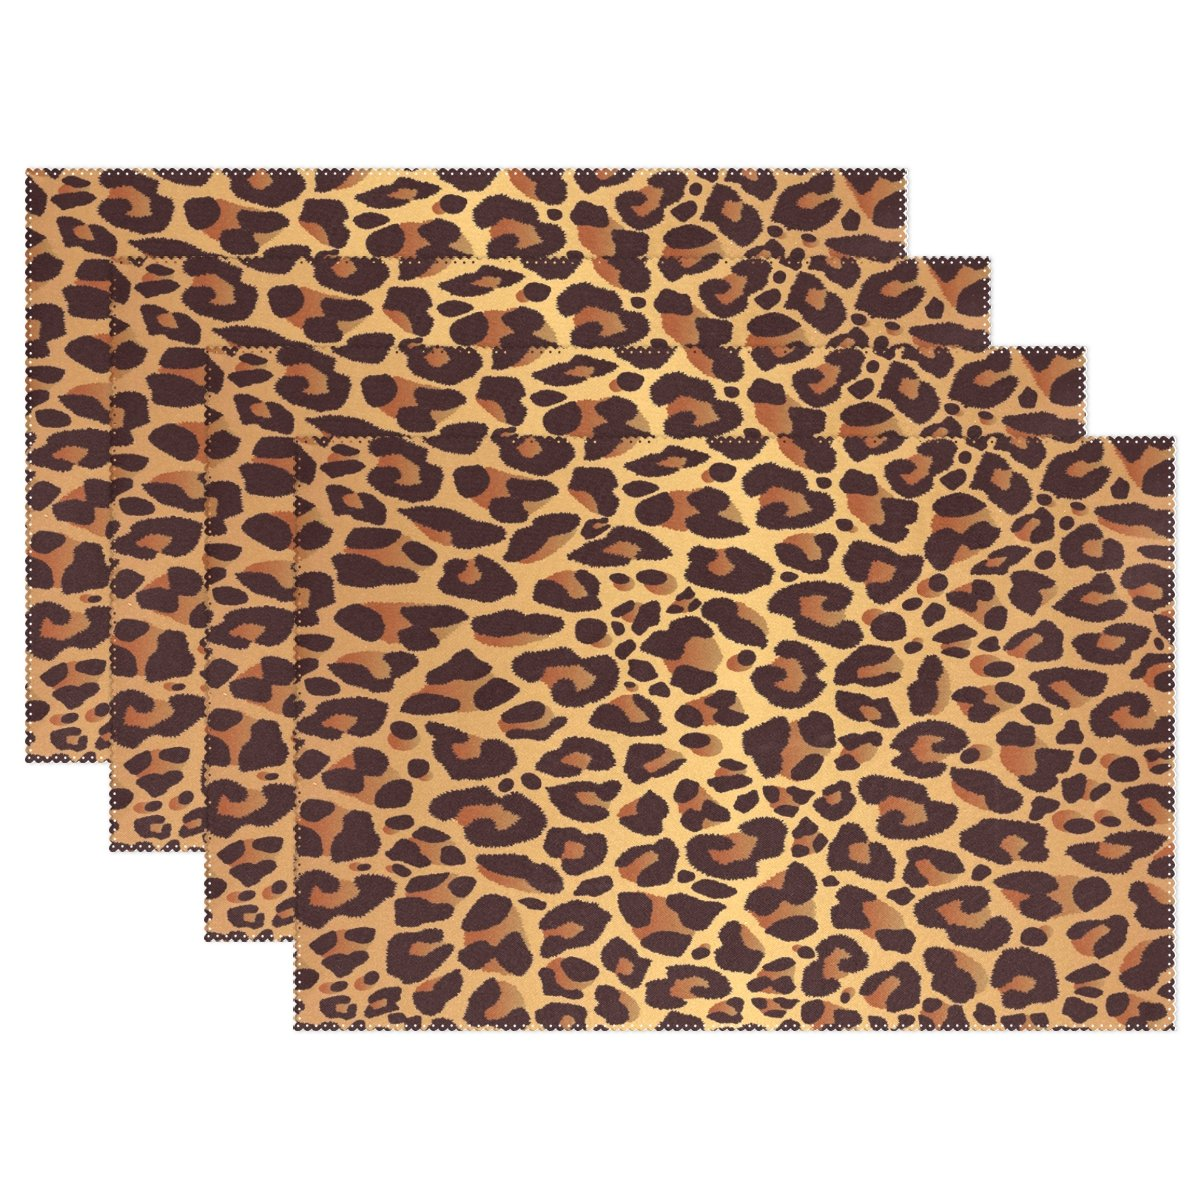 WOZO Bright Leopard Print Placemat Table Mat, Animal Fur 12'' x 18'' Polyester Table Place Mat for Kitchen Dining Room Set of 6